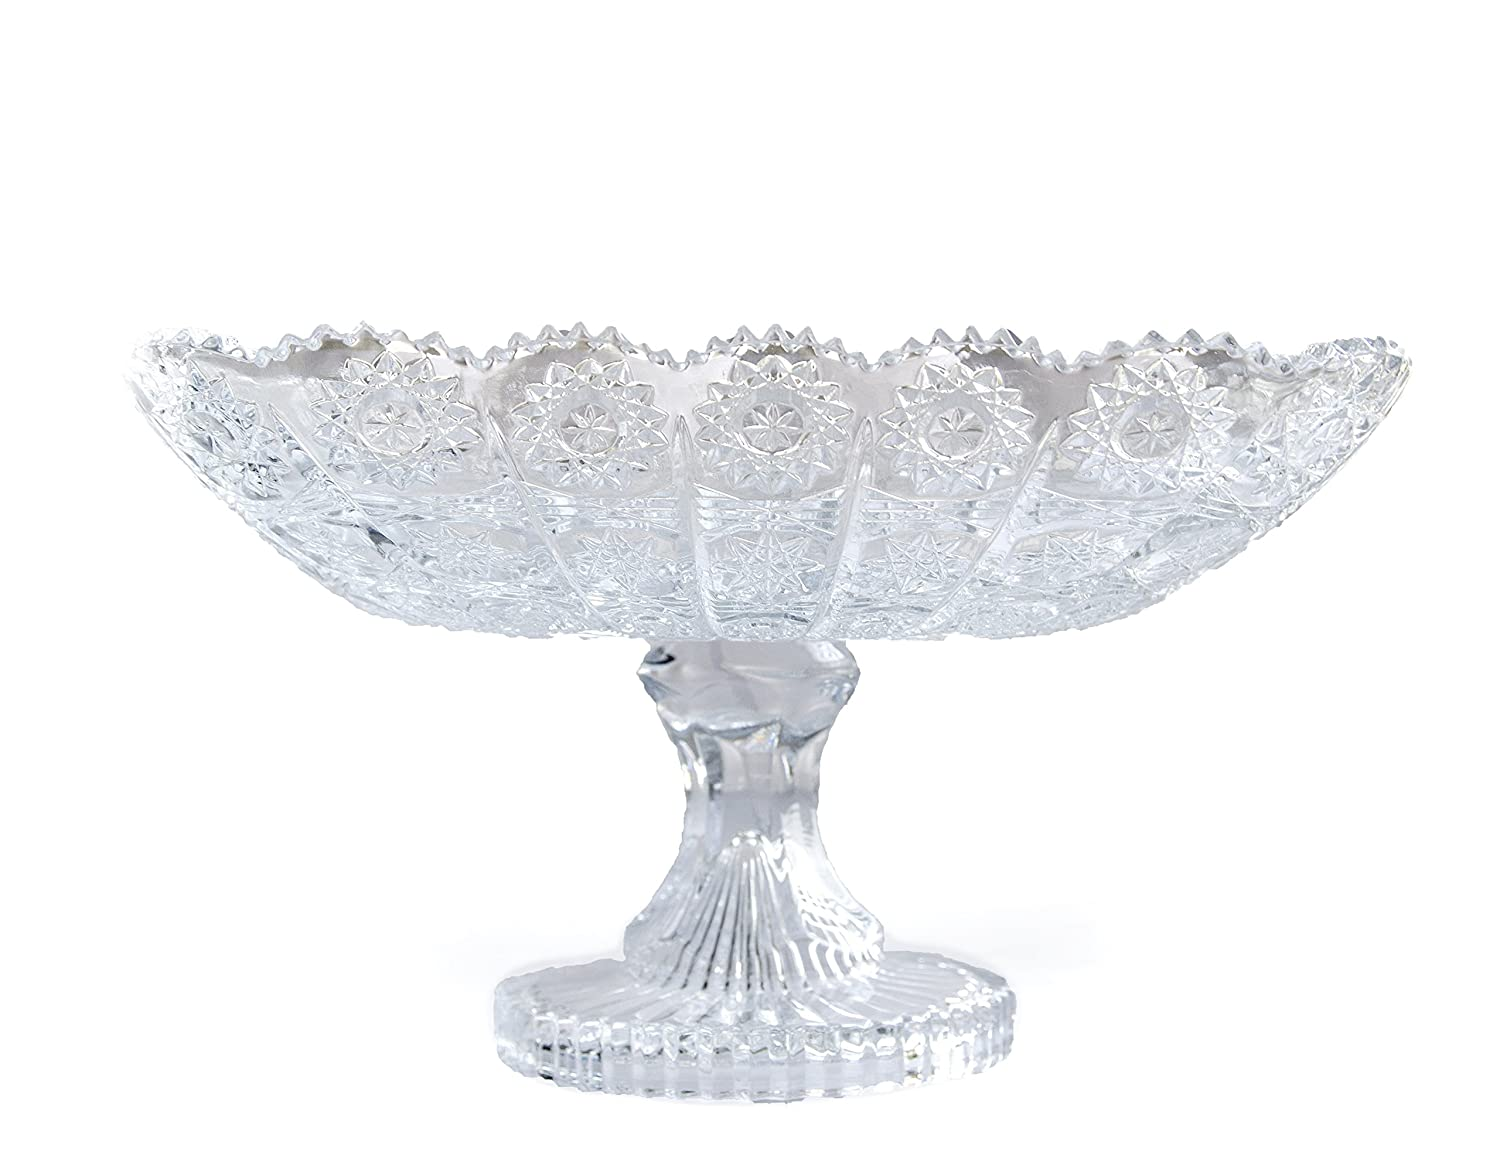 New 2018 Elegant Crystal Glass Serving Footed Square Bowl for Home, Office, Dé cor, Serving Fruit or Desert Pars Collections YK-0712